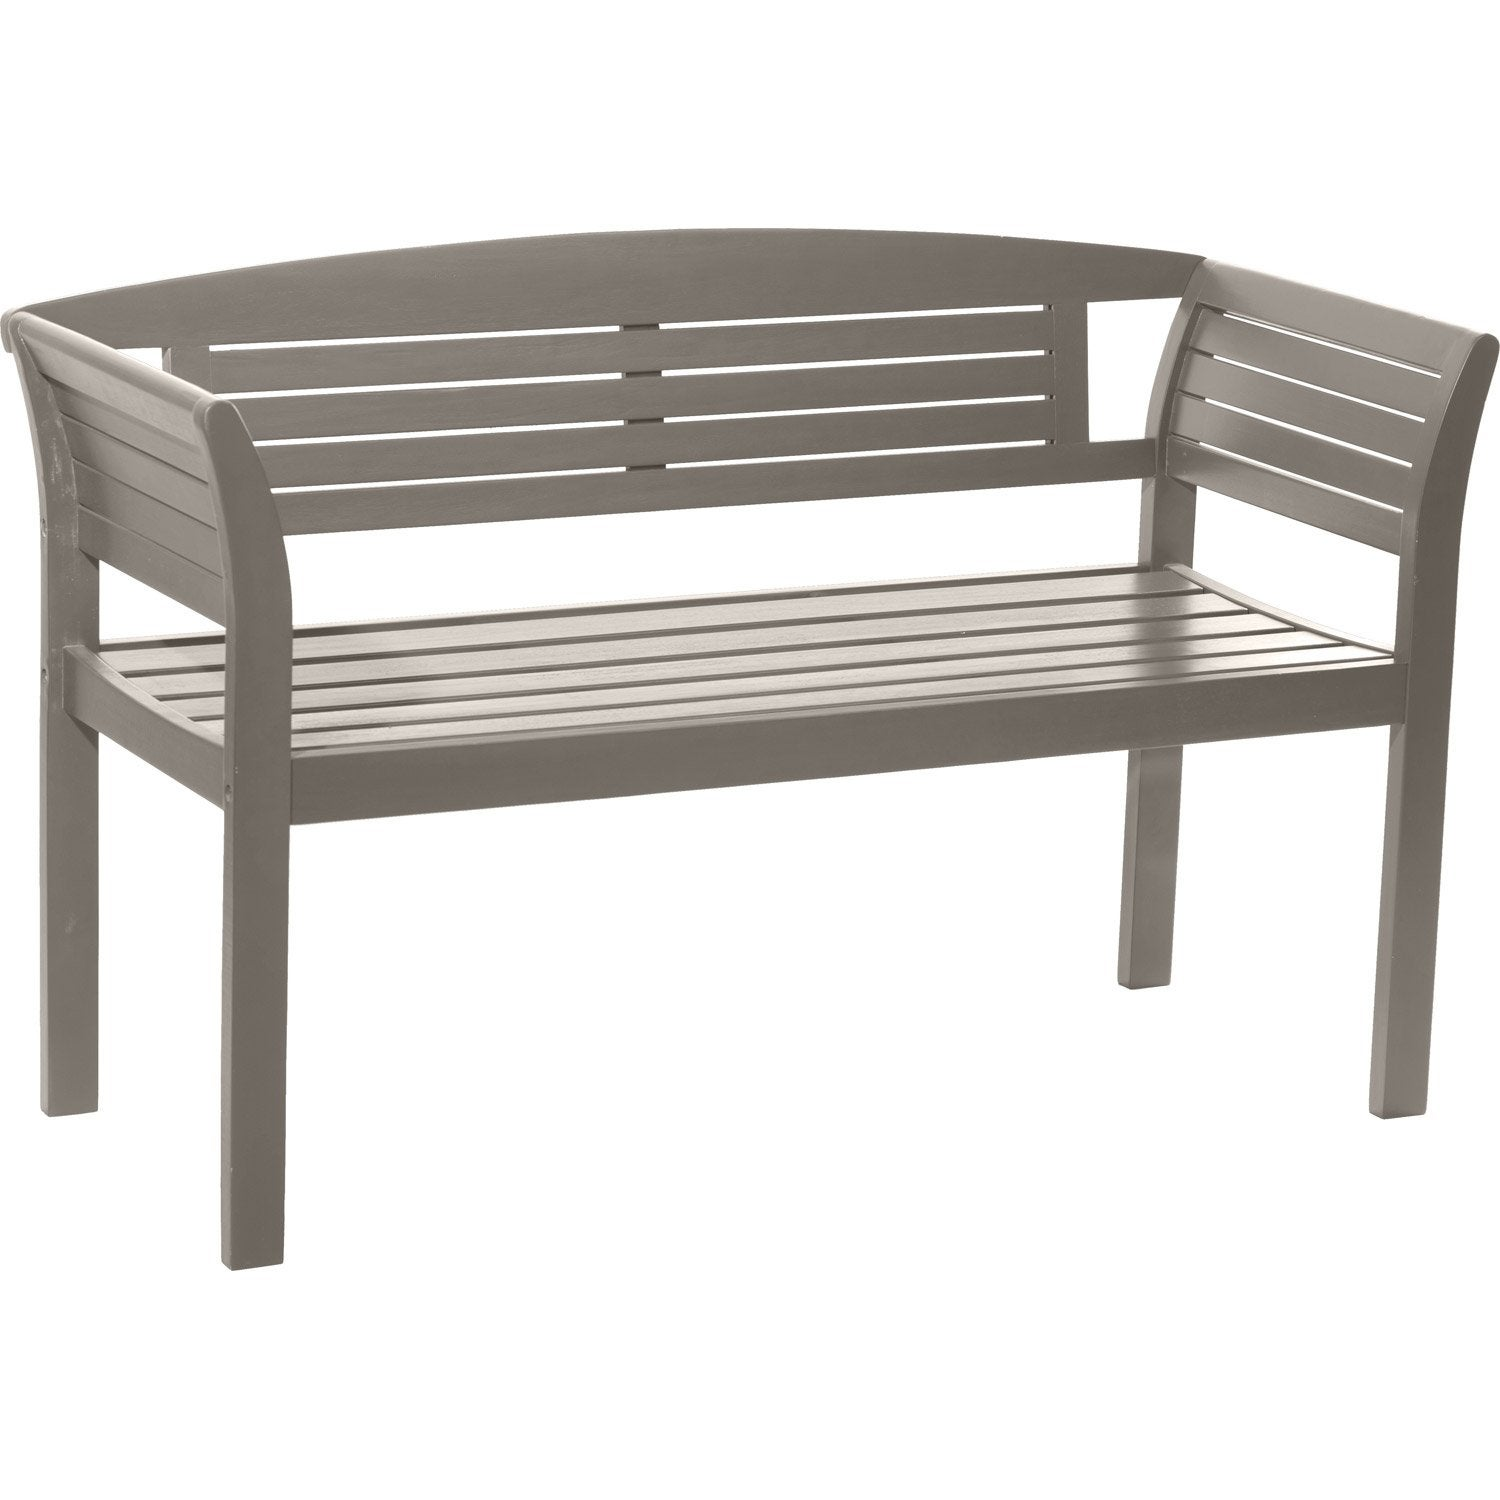 banc 2 places de jardin en bois new york r glisse leroy. Black Bedroom Furniture Sets. Home Design Ideas